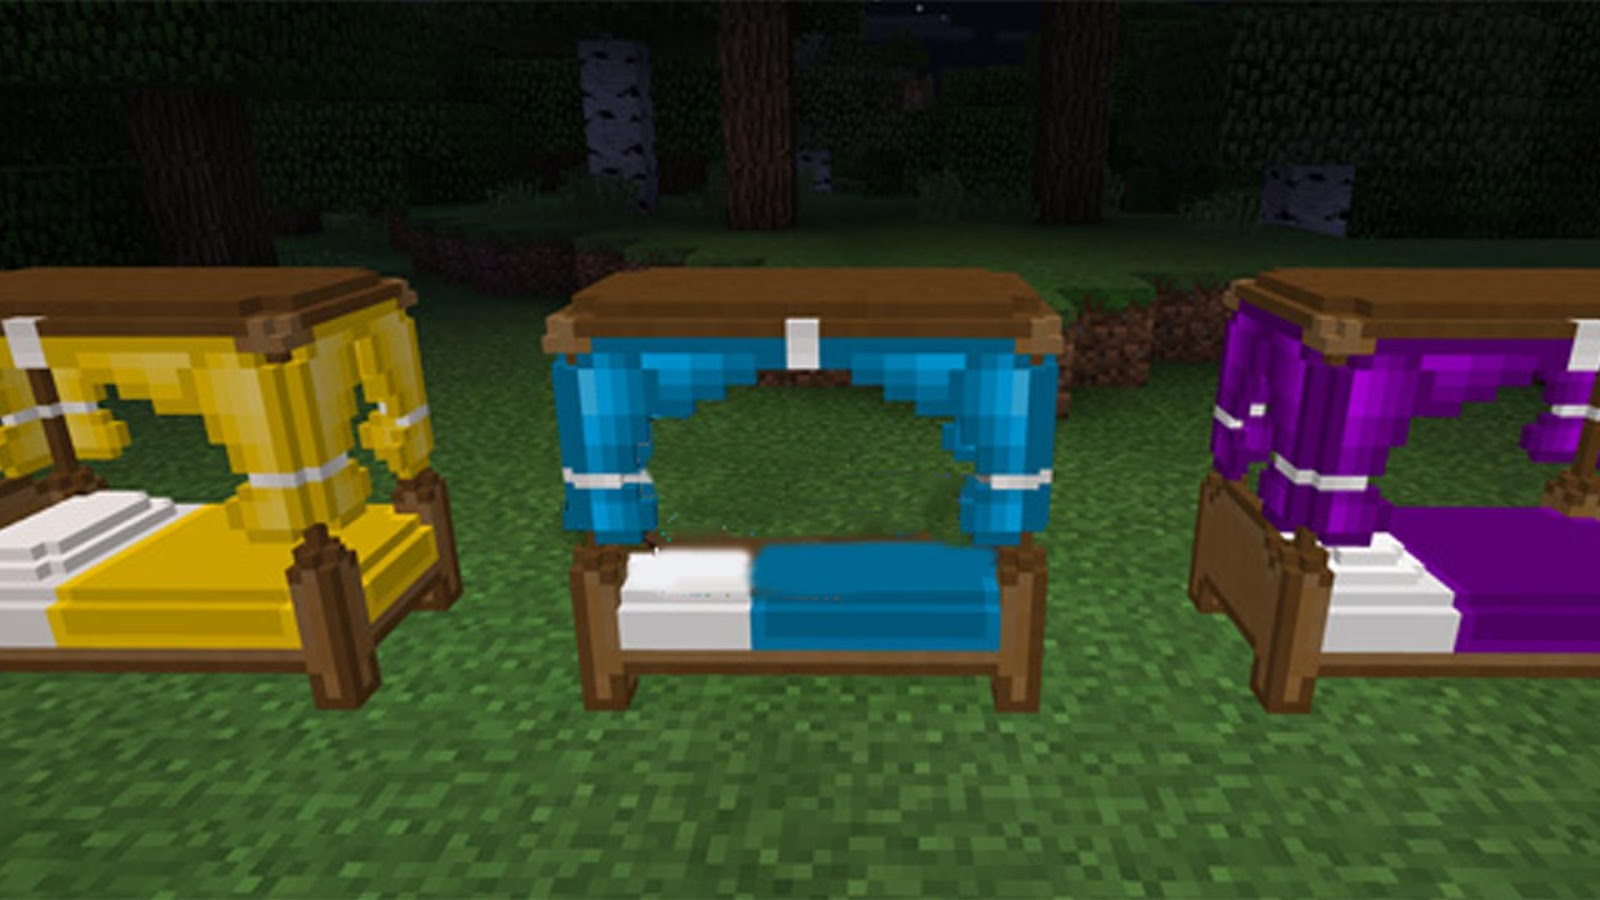 Furniture Mod For Minecraft Pe 1 7 Apk Download Android